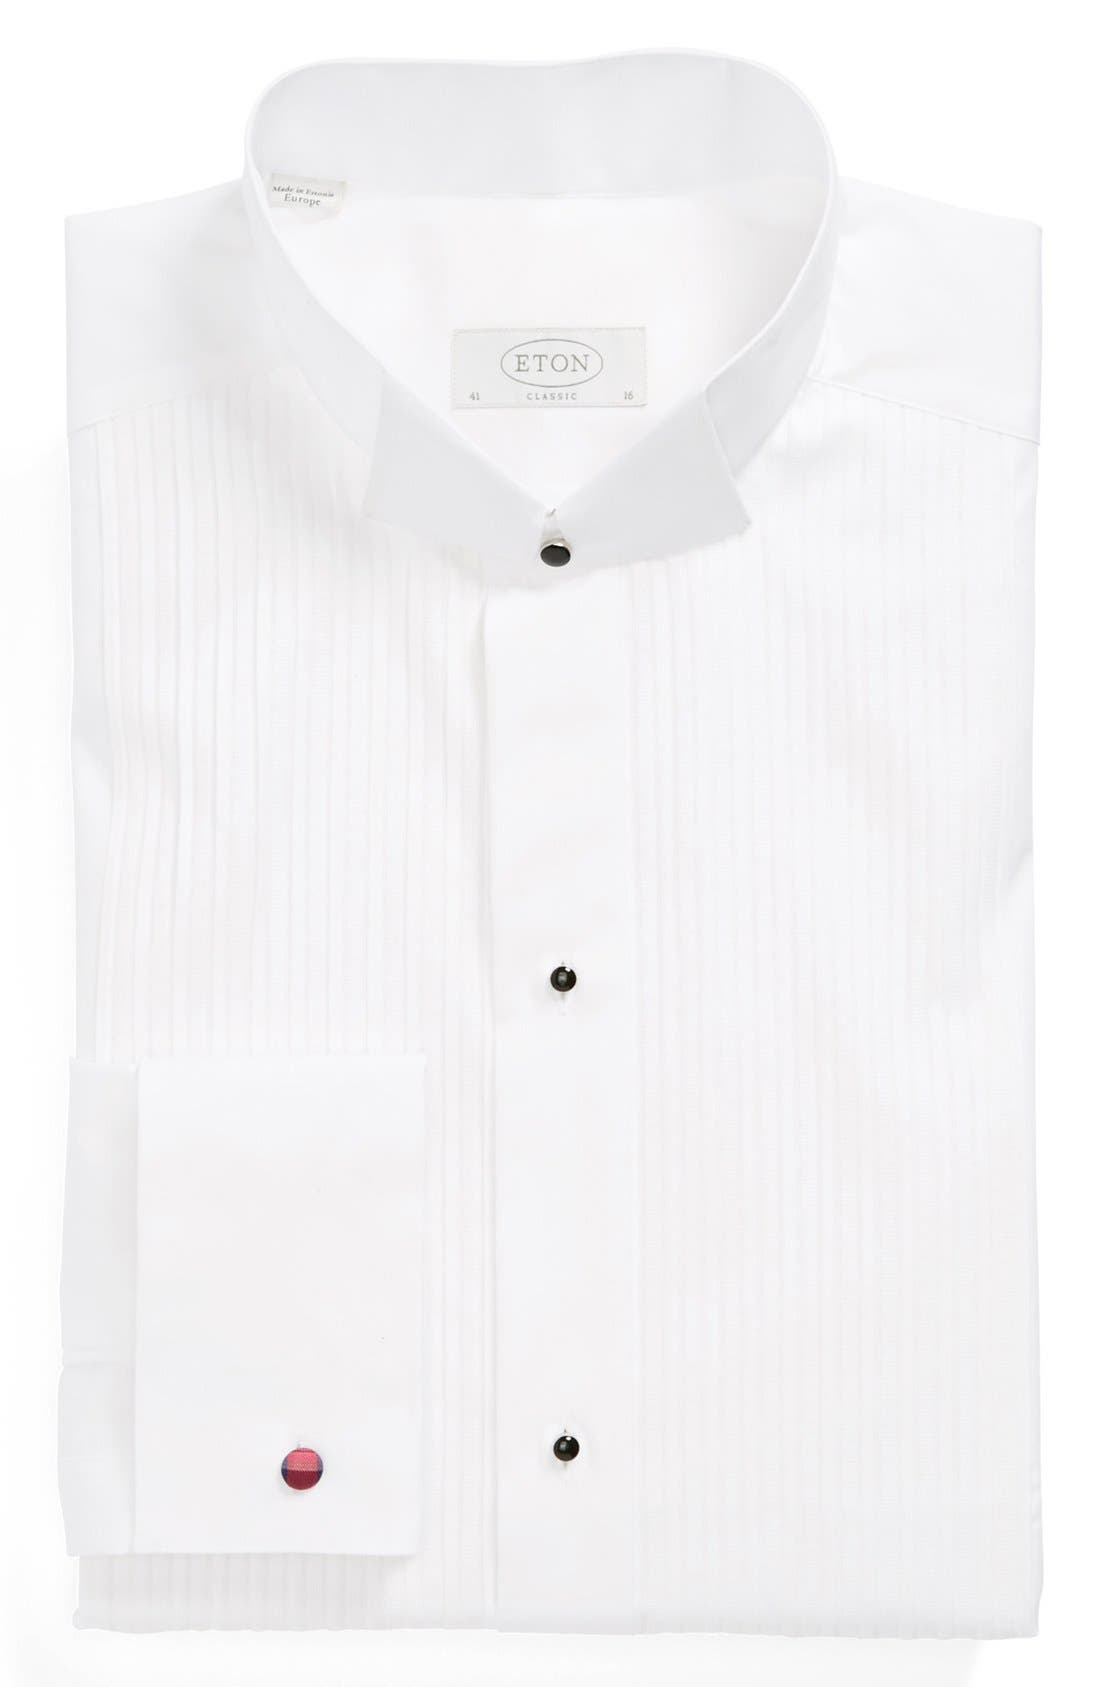 Alternate Image 1 Selected - Eton Classic Fit Dress Shirt